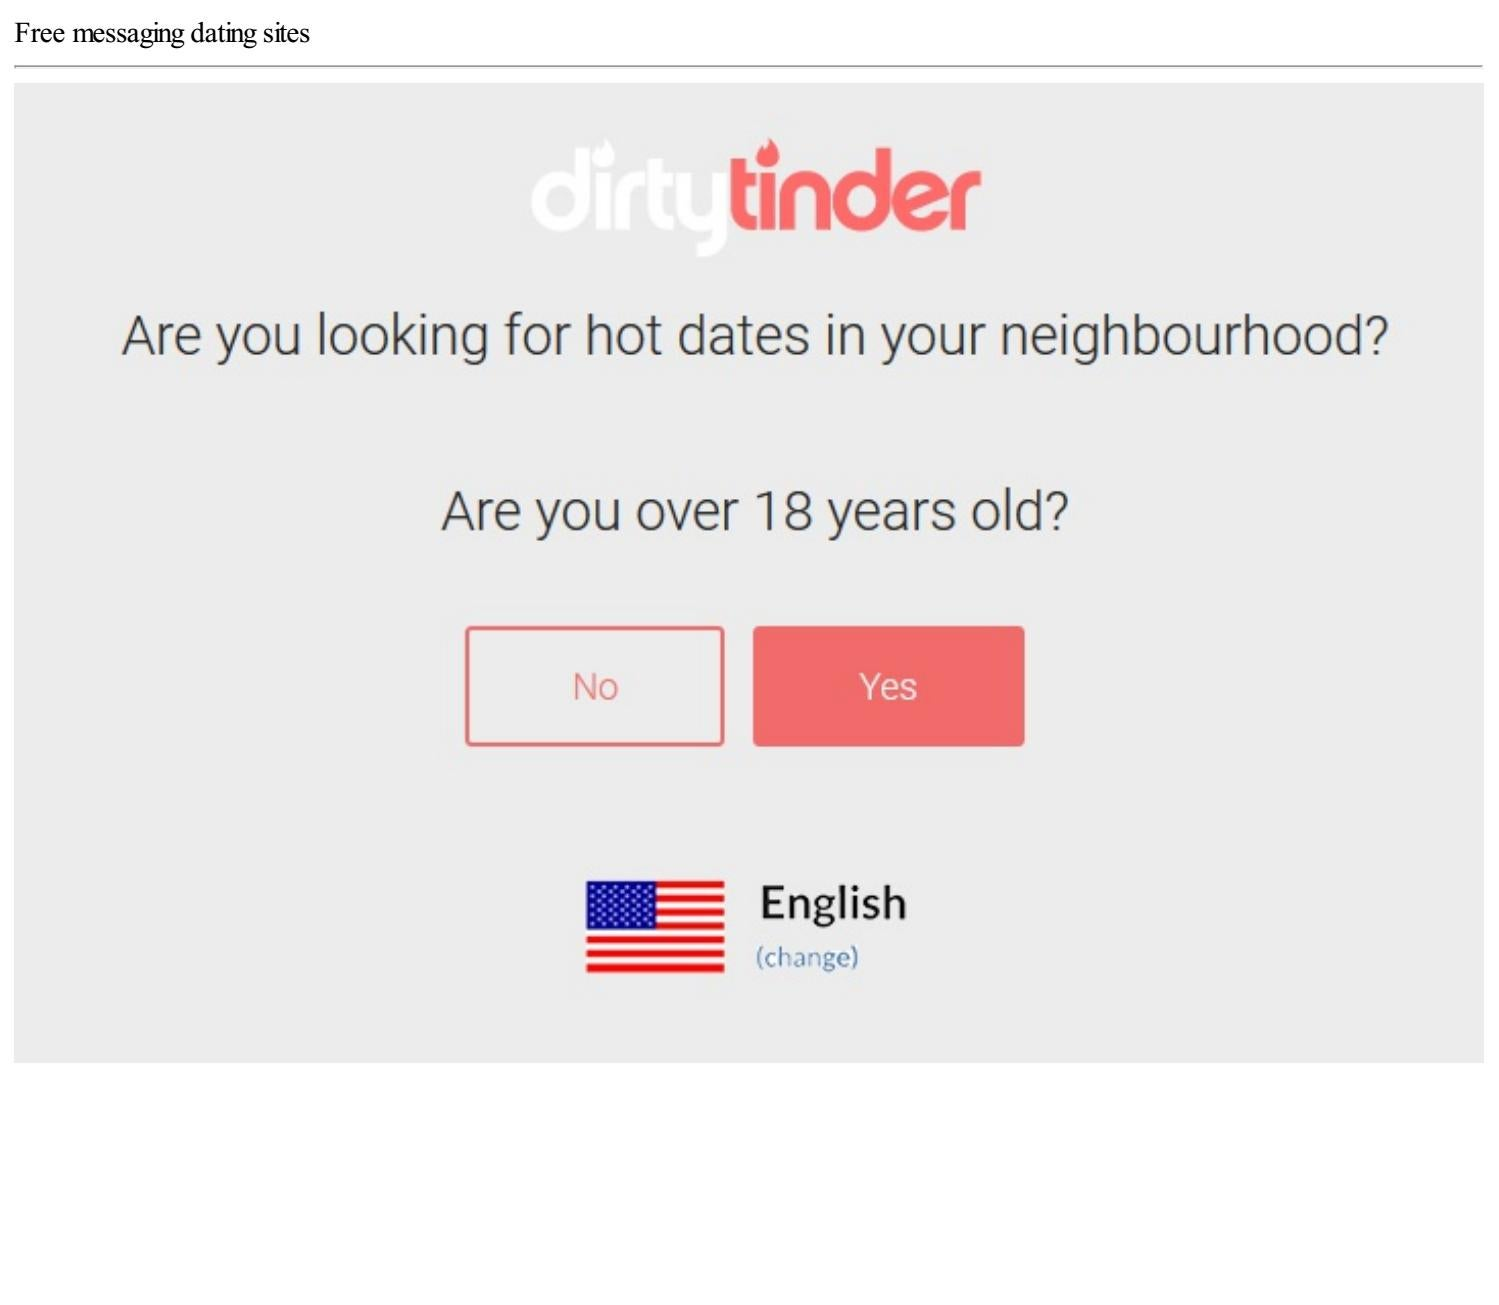 dating websites with free messaging